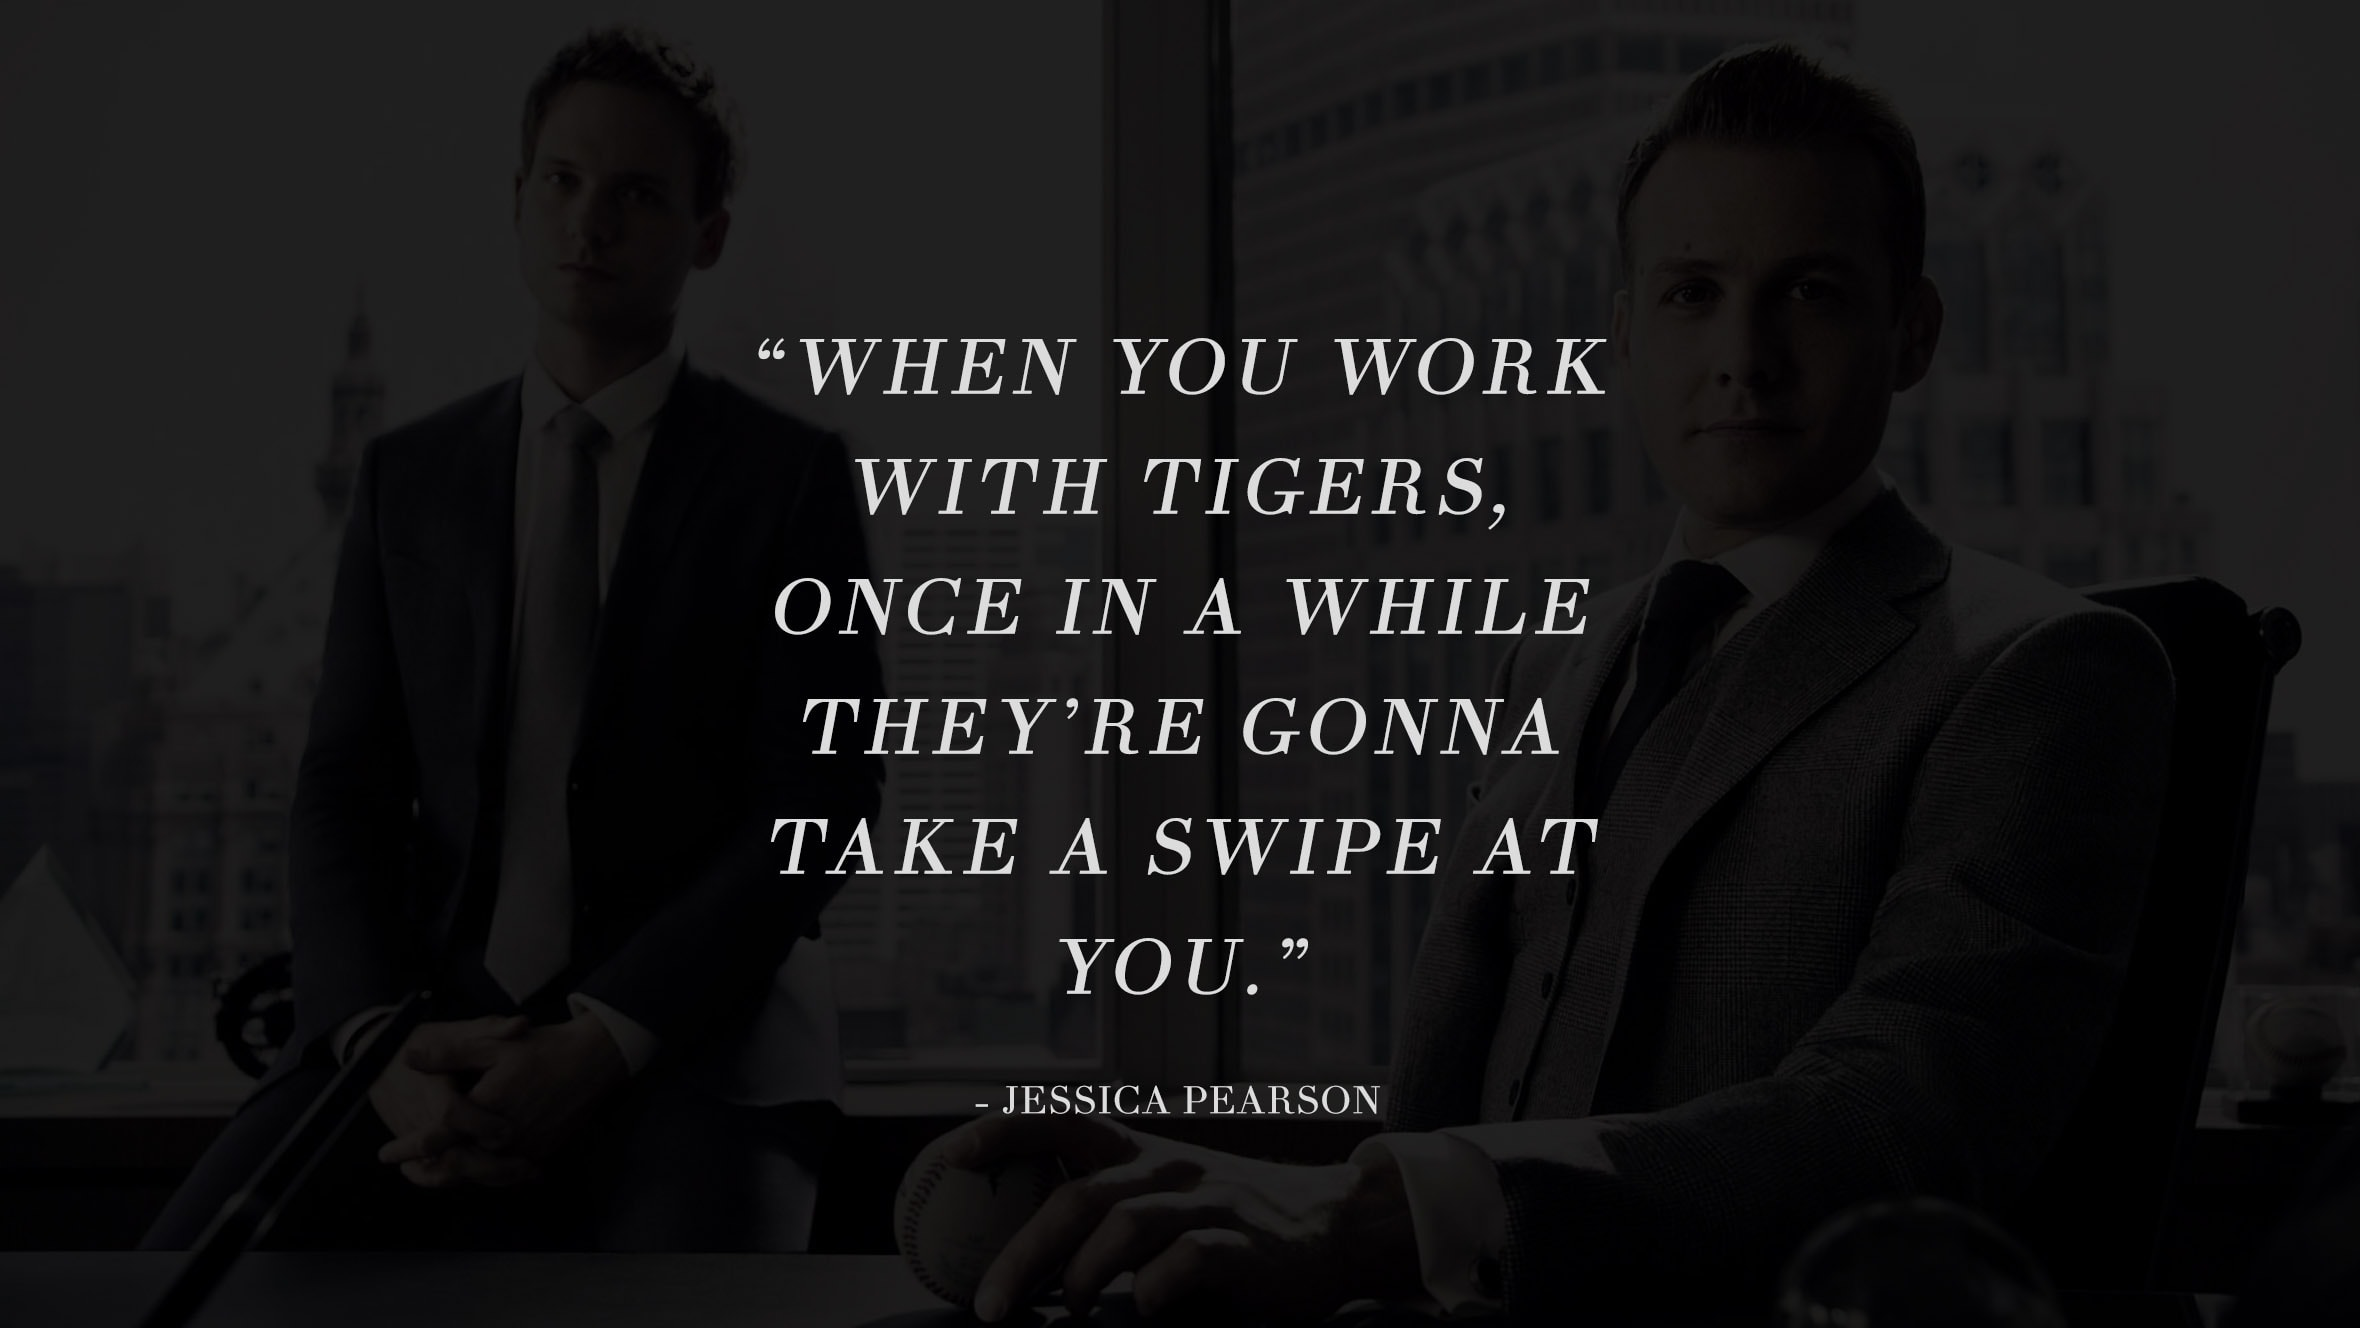 13 Highly Inspiring And Motivating Quotes From The Successful TV Series Suits 9